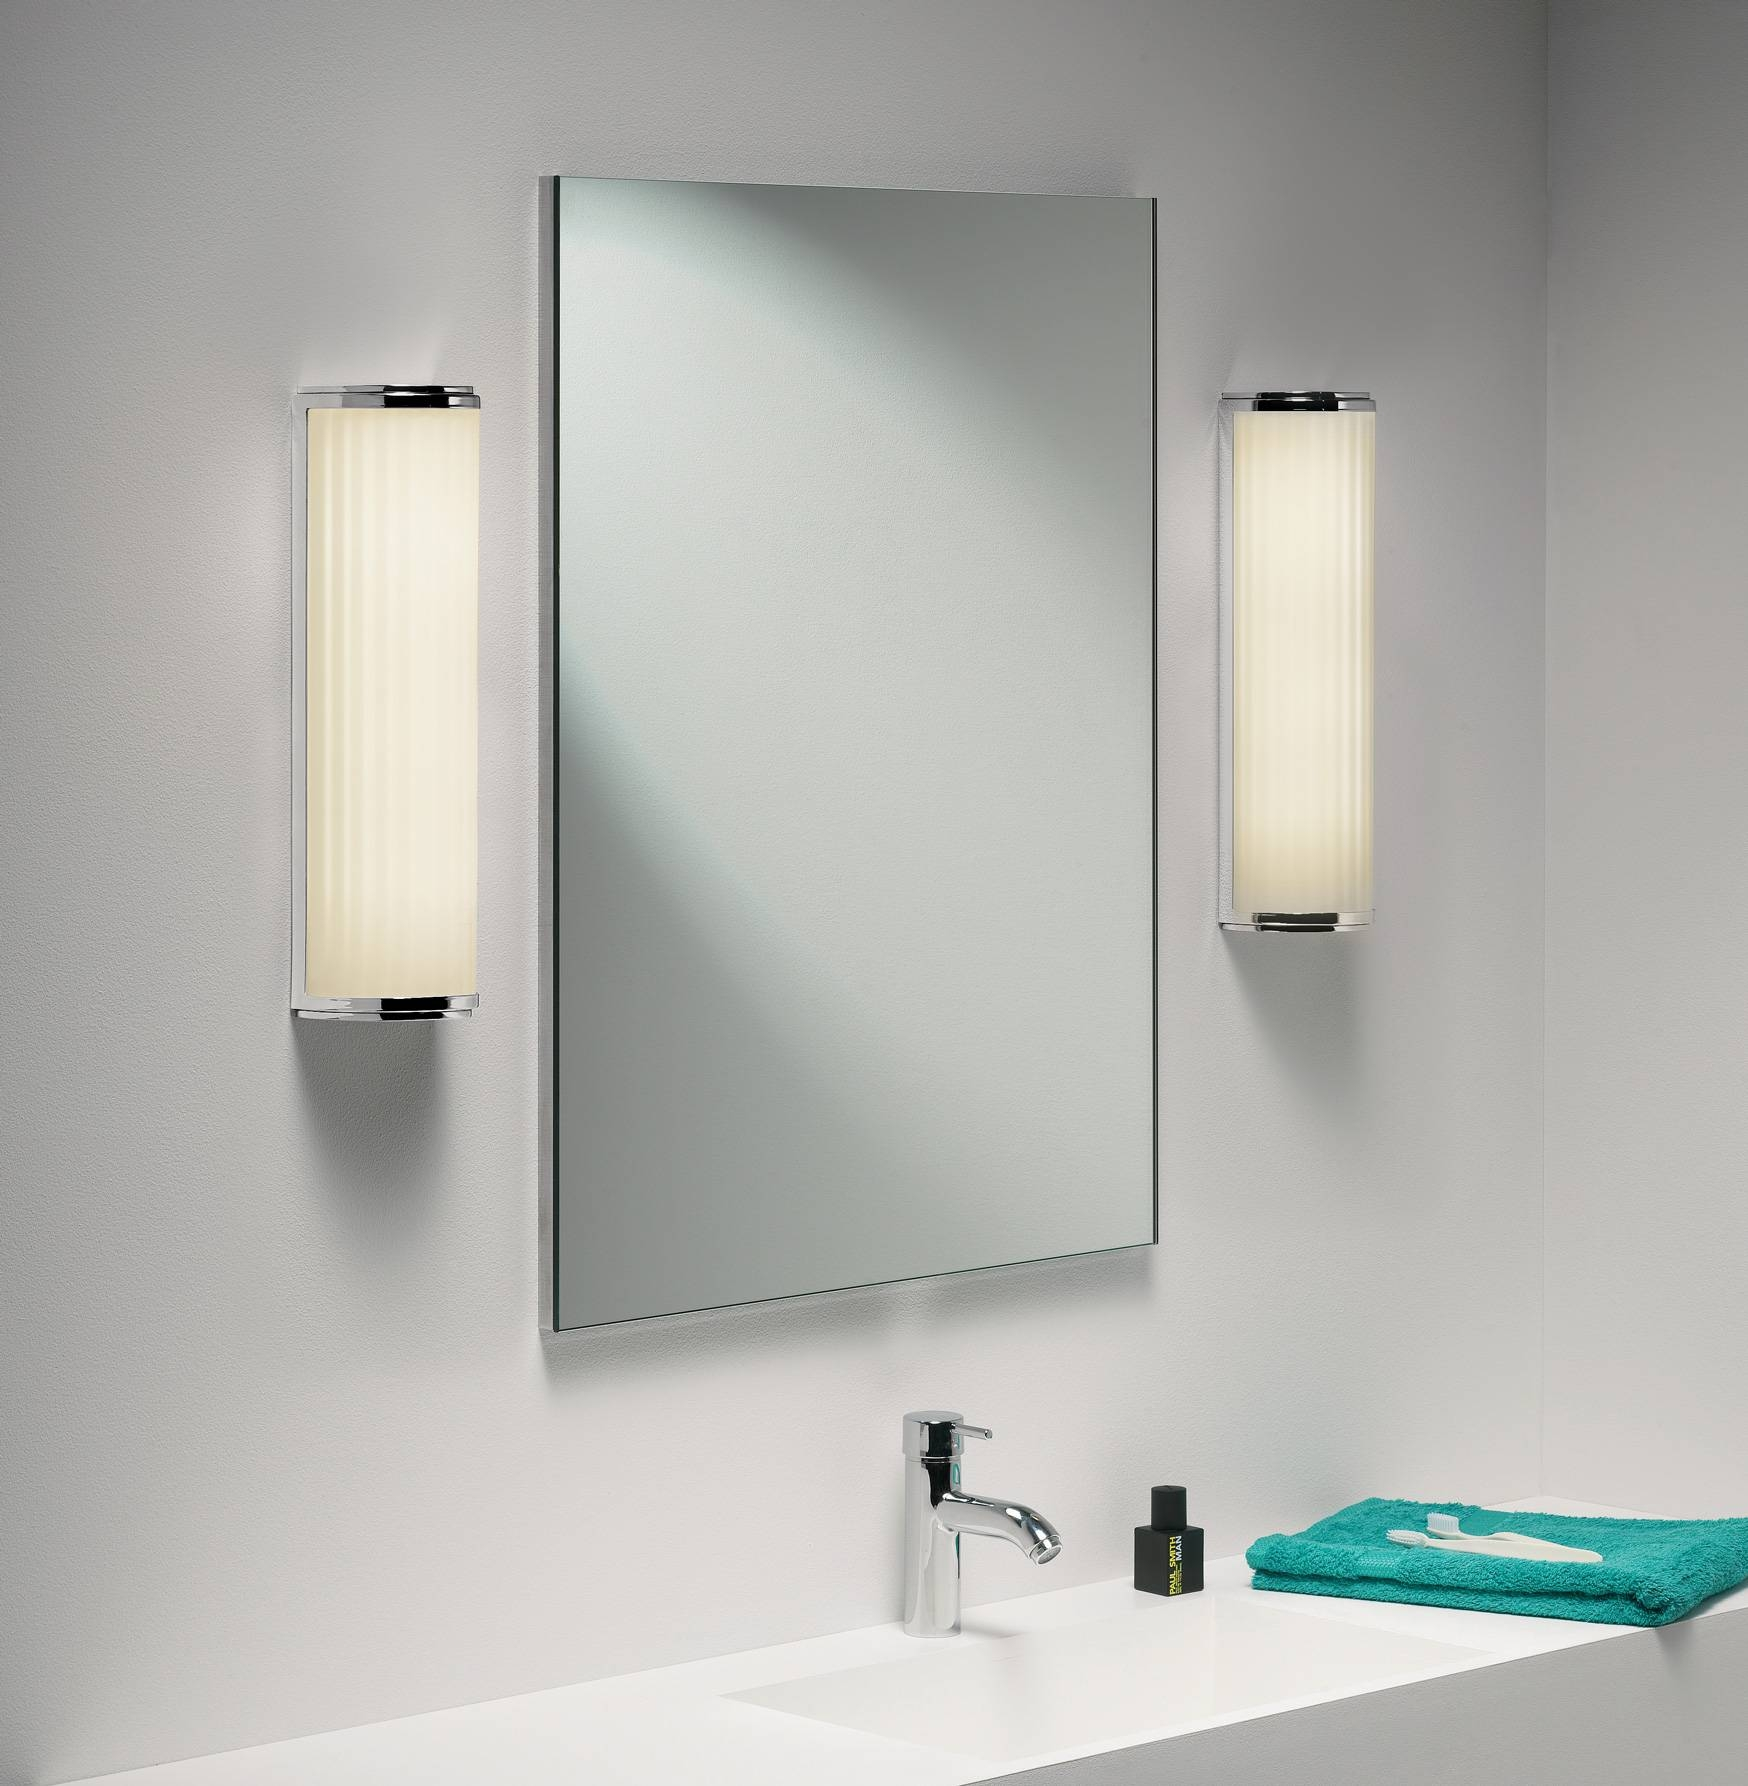 Bathroom Wall Lights | Vanity Lights | Abbeygate Lighting throughout Wall Light Mirrors (Image 4 of 15)